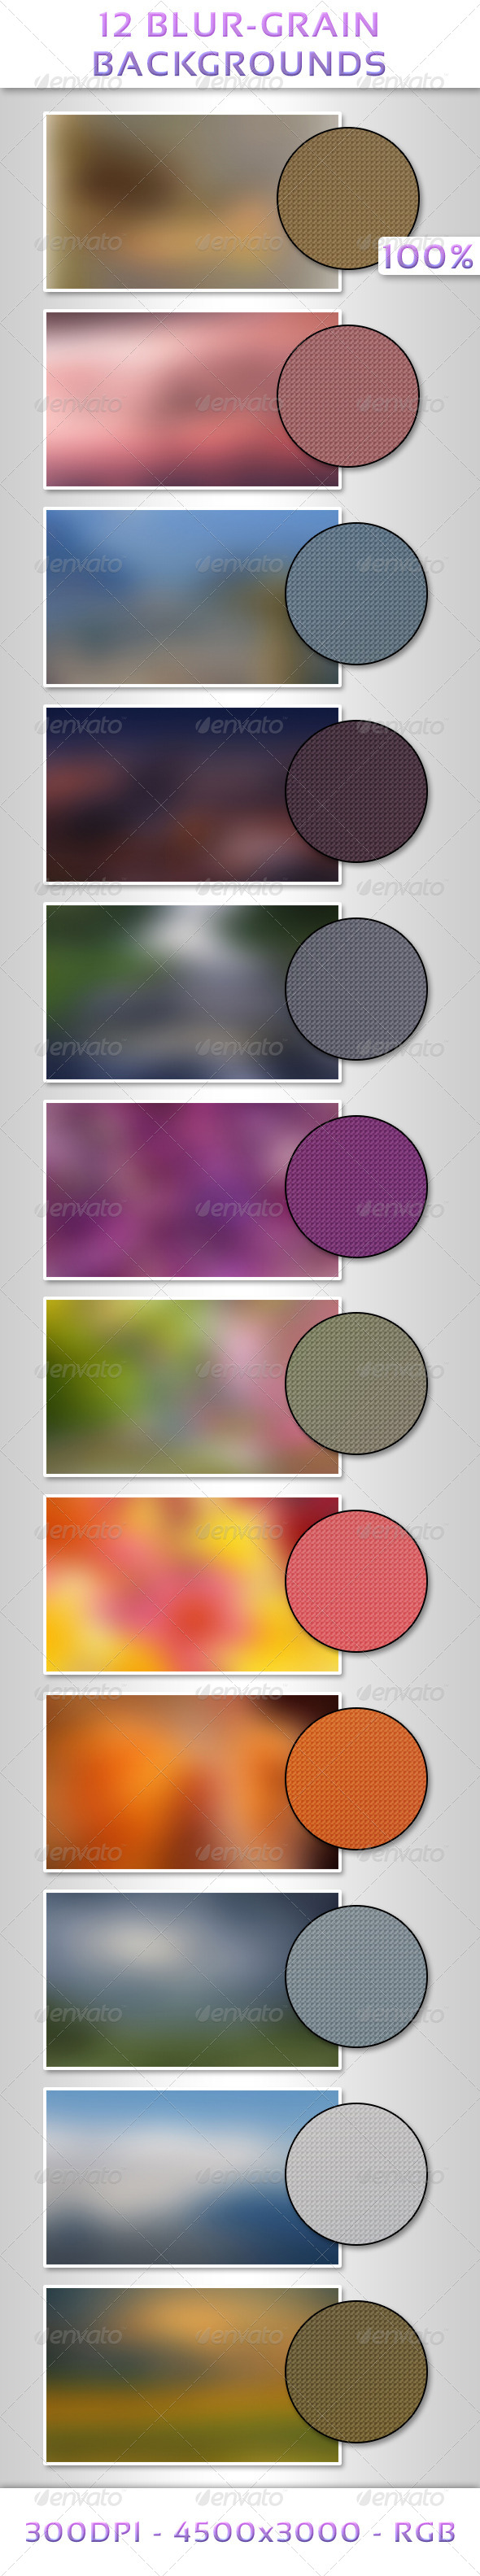 GraphicRiver 12 Blur-Grain Backgrounds 6842856